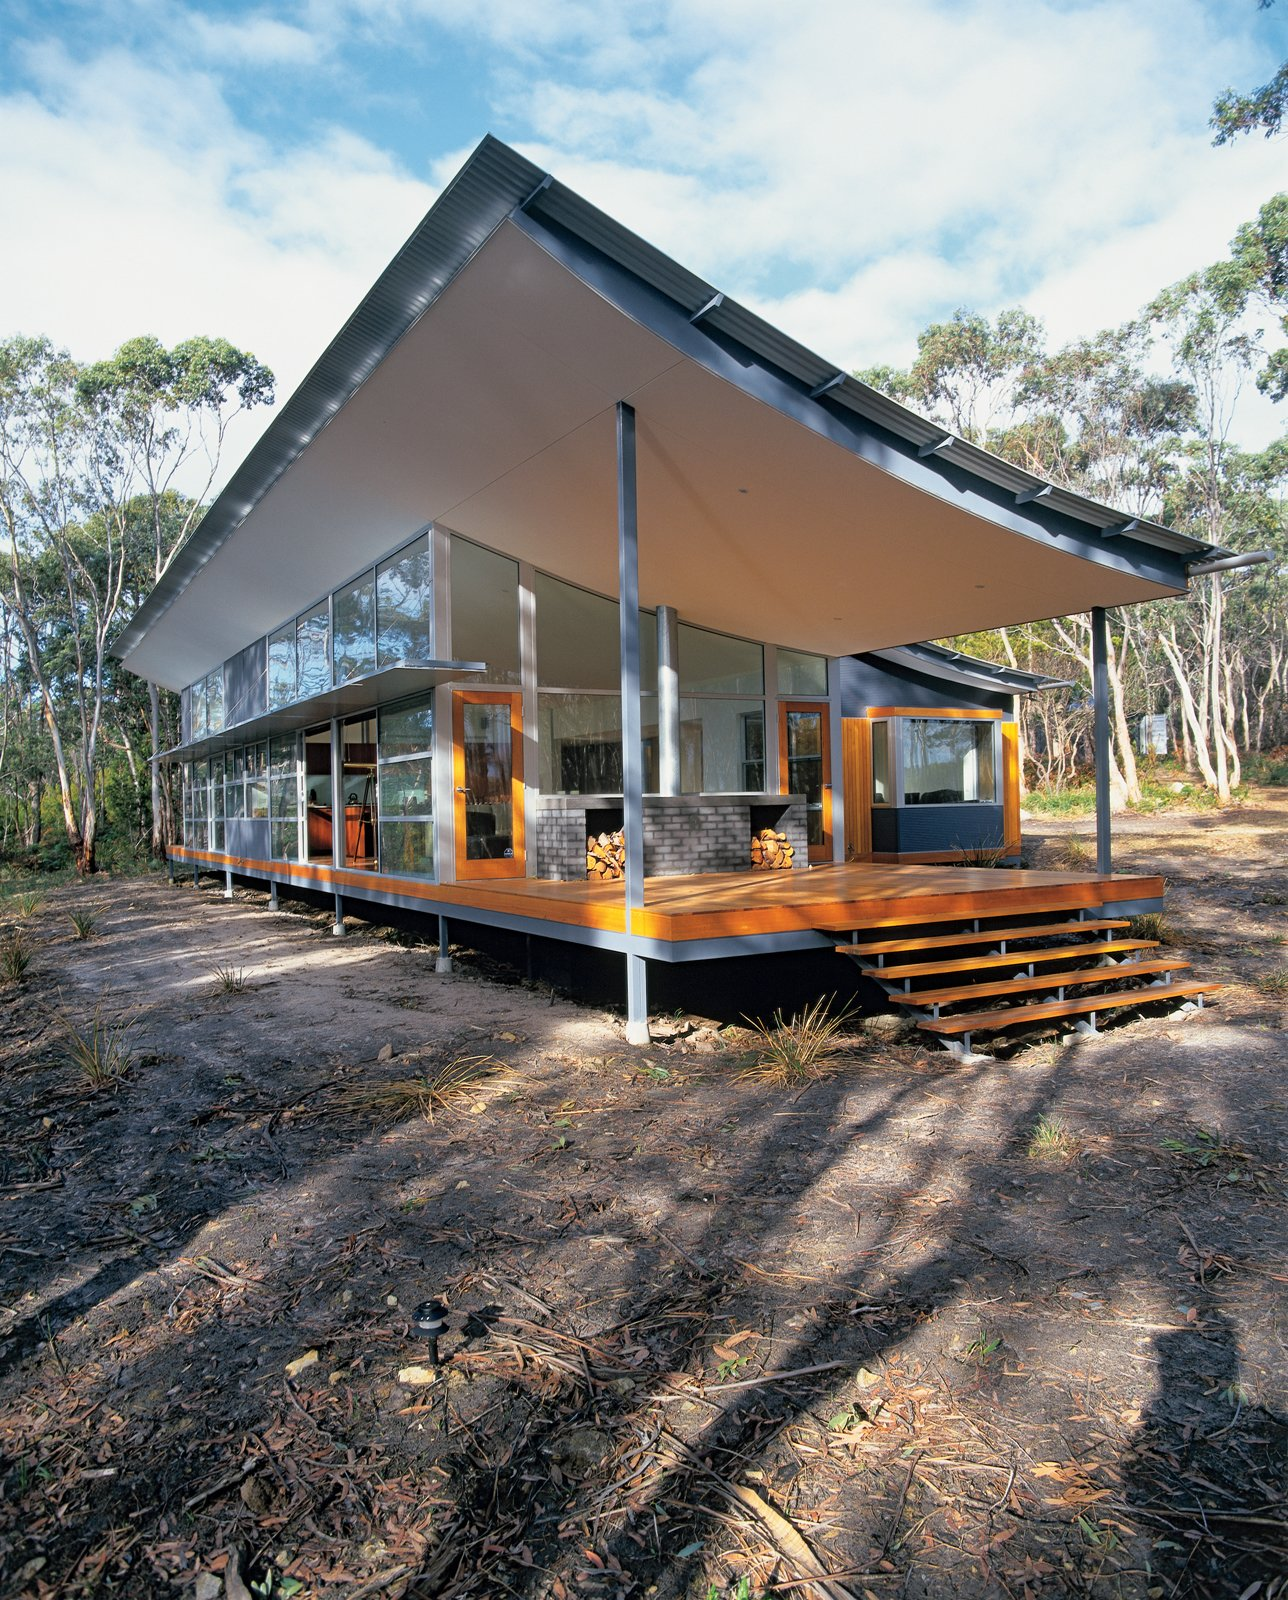 Solar panels mounted on a shipping container onsite (not pictured) heat this curvy house in Tasmania. The swooping roof cantilevered over the west-facing desk mitigates the intense afternoon sun.